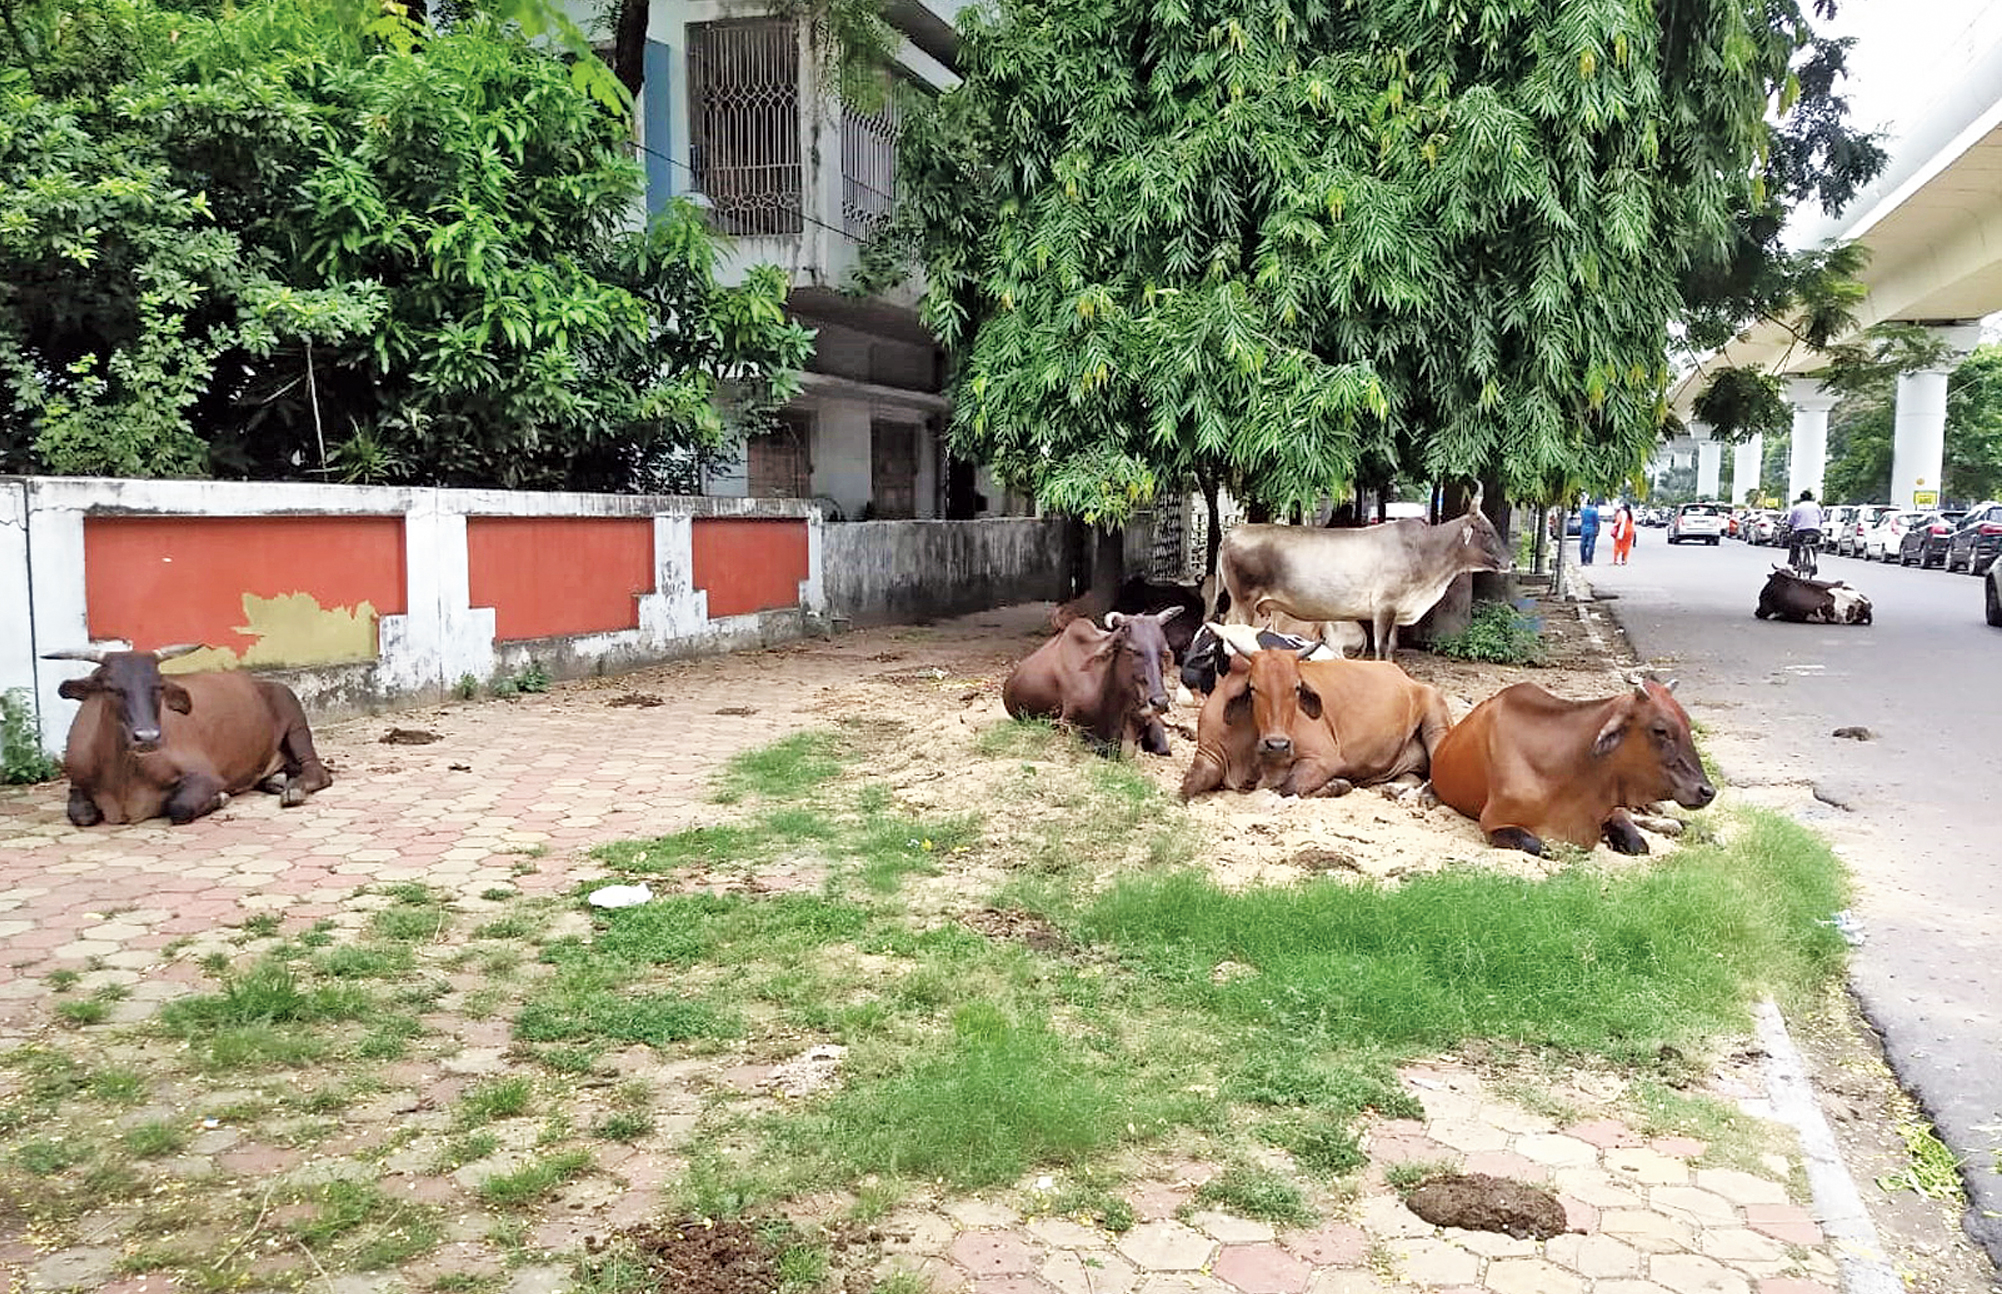 Cows rest on a pavement splattered with dung near City Centre in Salt Lake on Monday.